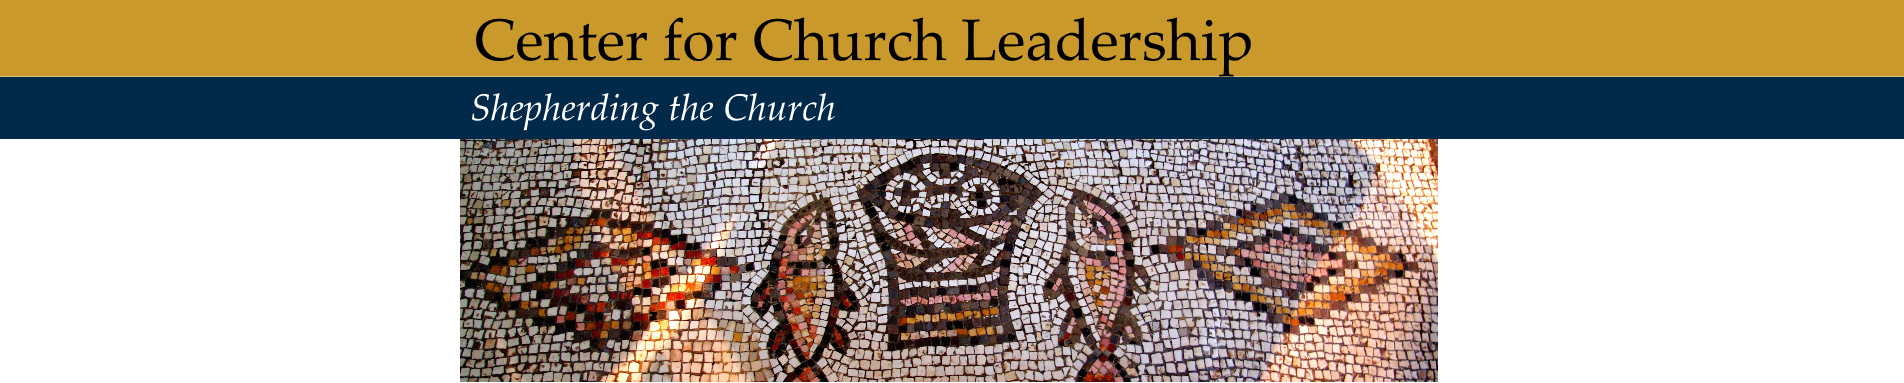 center for church leadership banner